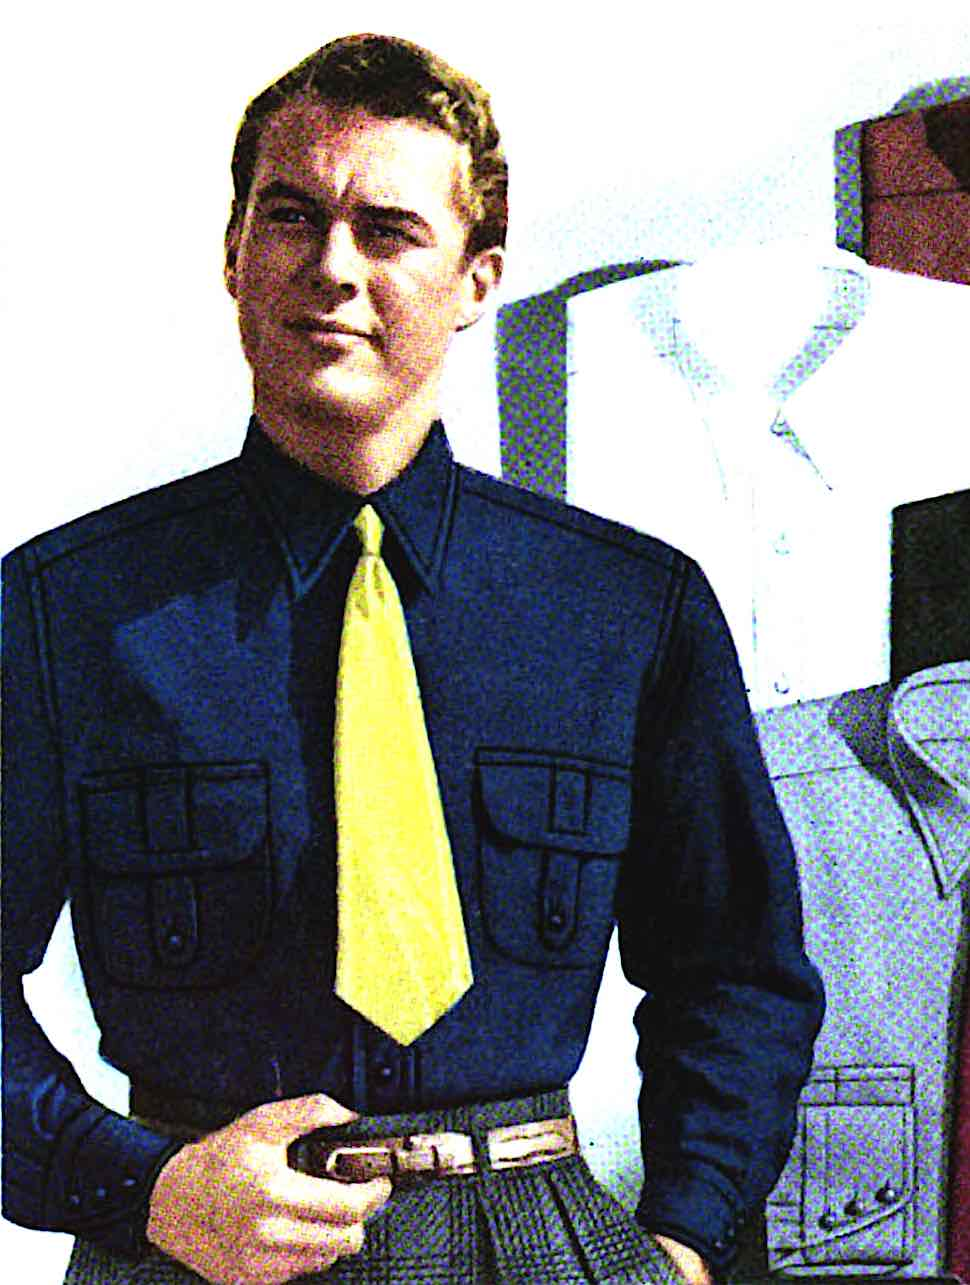 1941 fashion colors for men, a am in blue and yellow